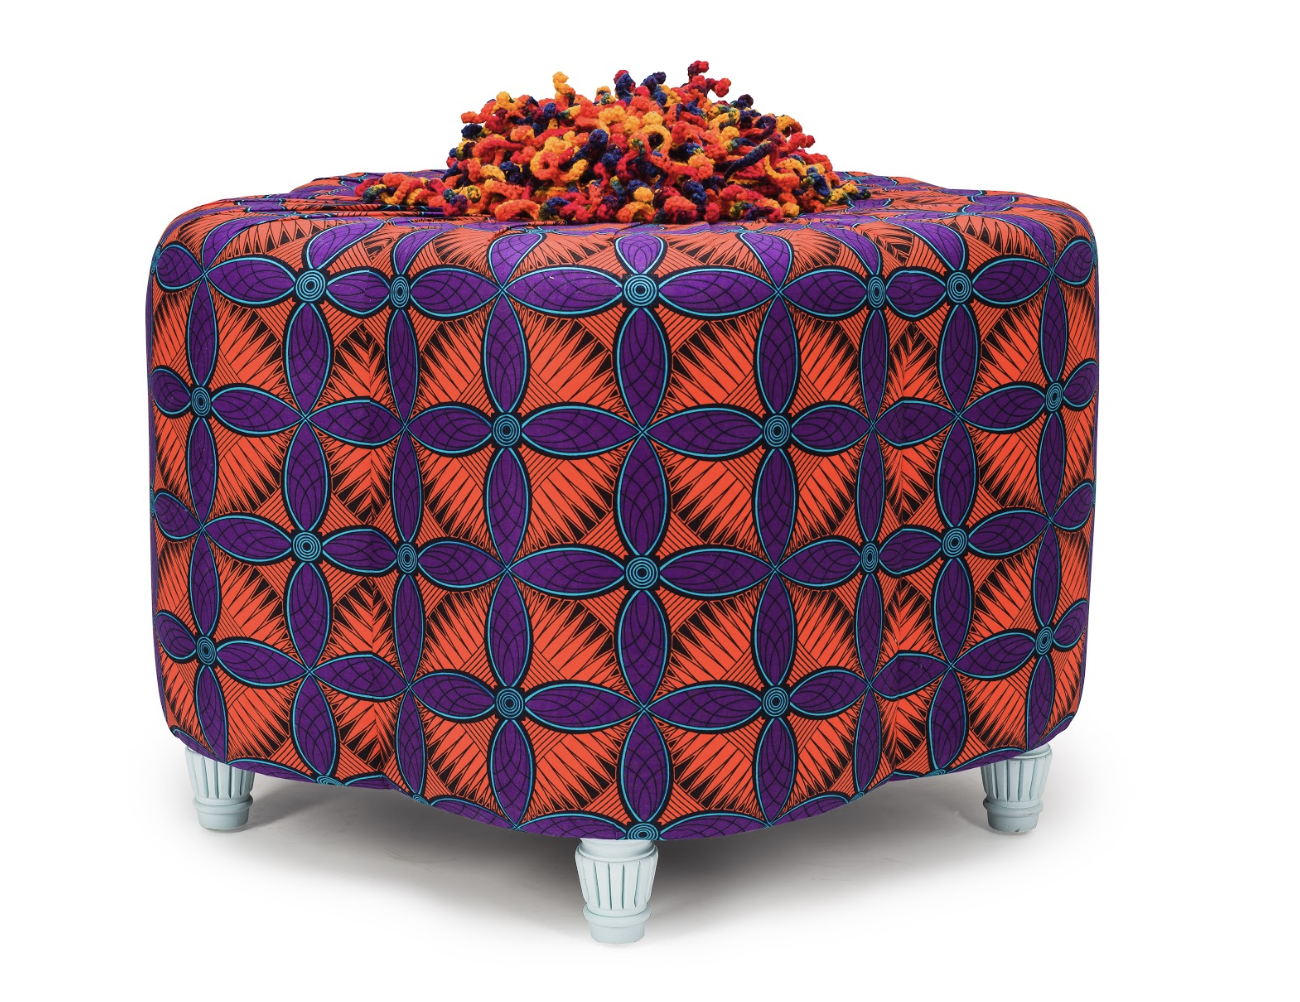 Afro-footsie ottoman available here.  For more info about the our African Prints,  click here!   .........................................................................................................   For our most updated content, be sure to follow us on Instagram ( @ulloo42 ) and like our  Facebook  page!  You can browse the rest of our fabulous furniture and artwork at  ulloo42.com .